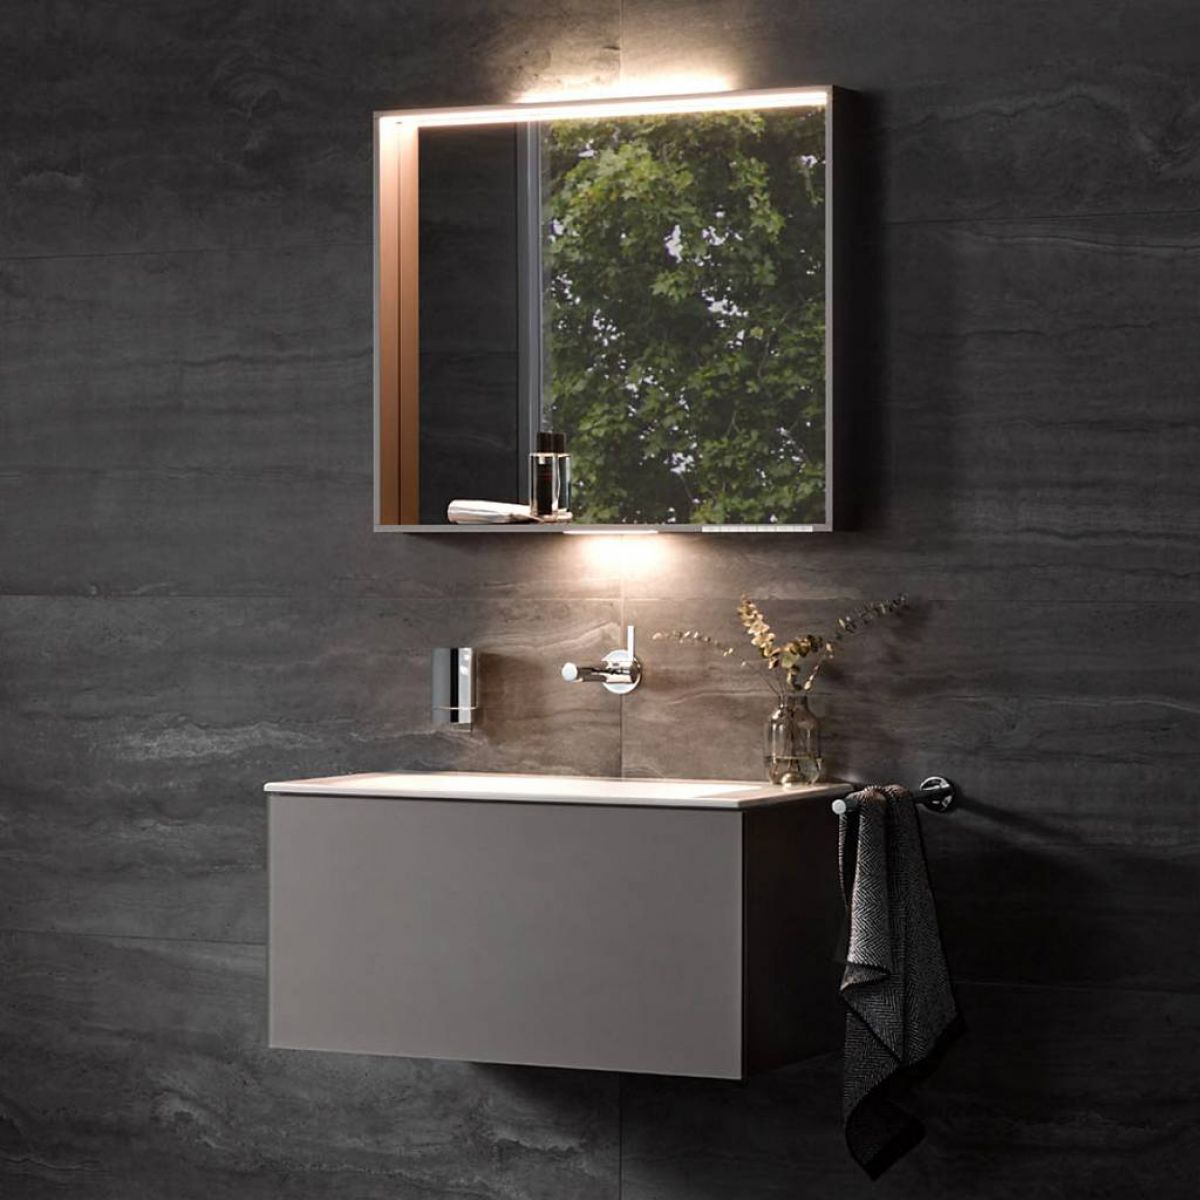 keuco bathroom cabinets keuco plan vanity unit bathrooms direct 13299